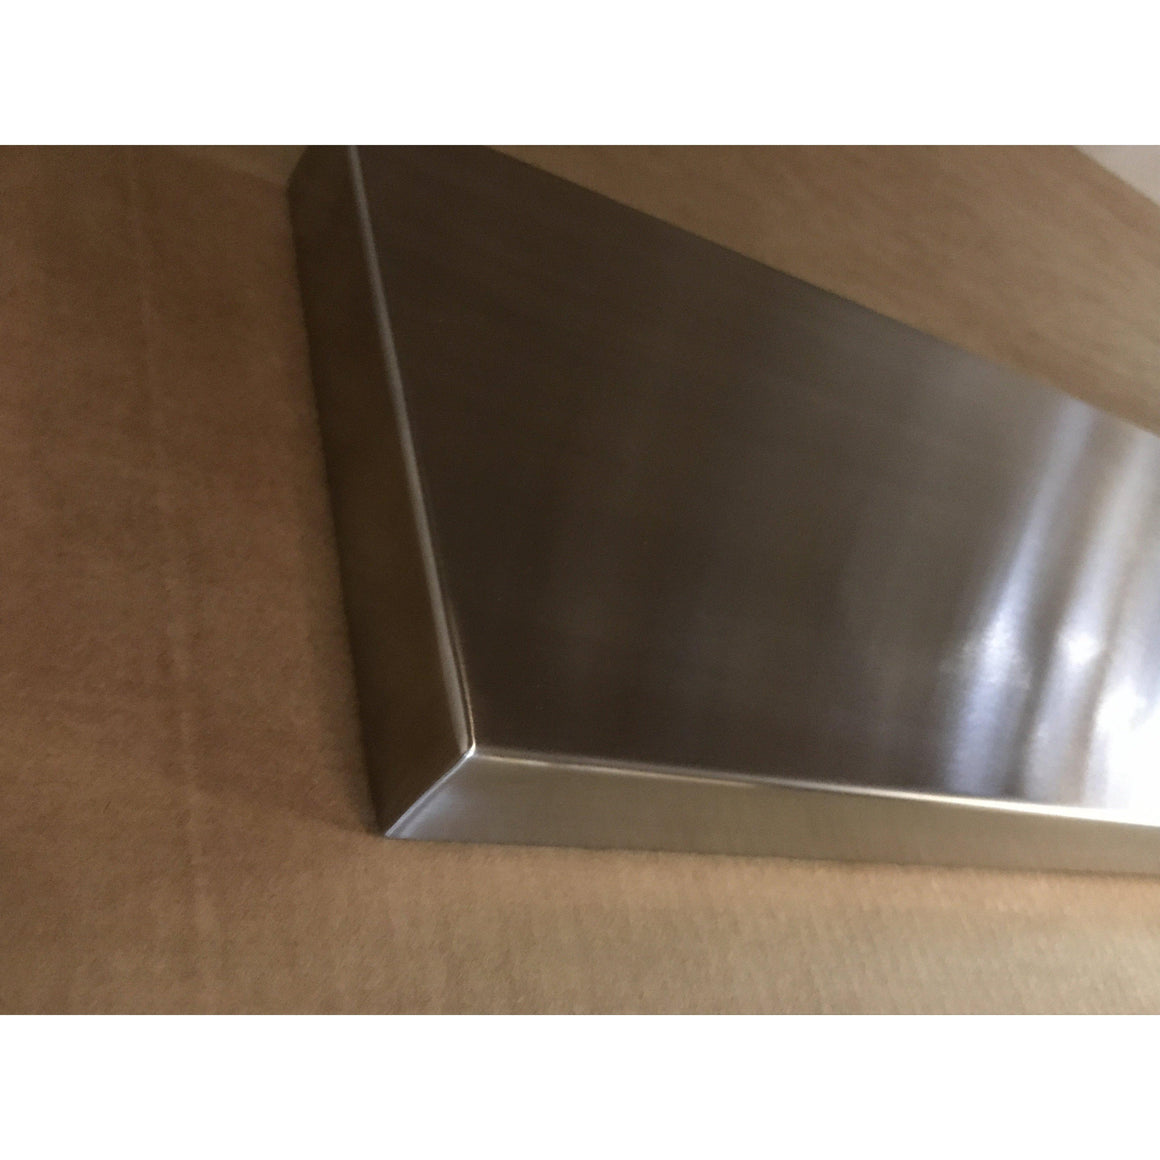 Stainless Steel Floating Shelves for Kitchen